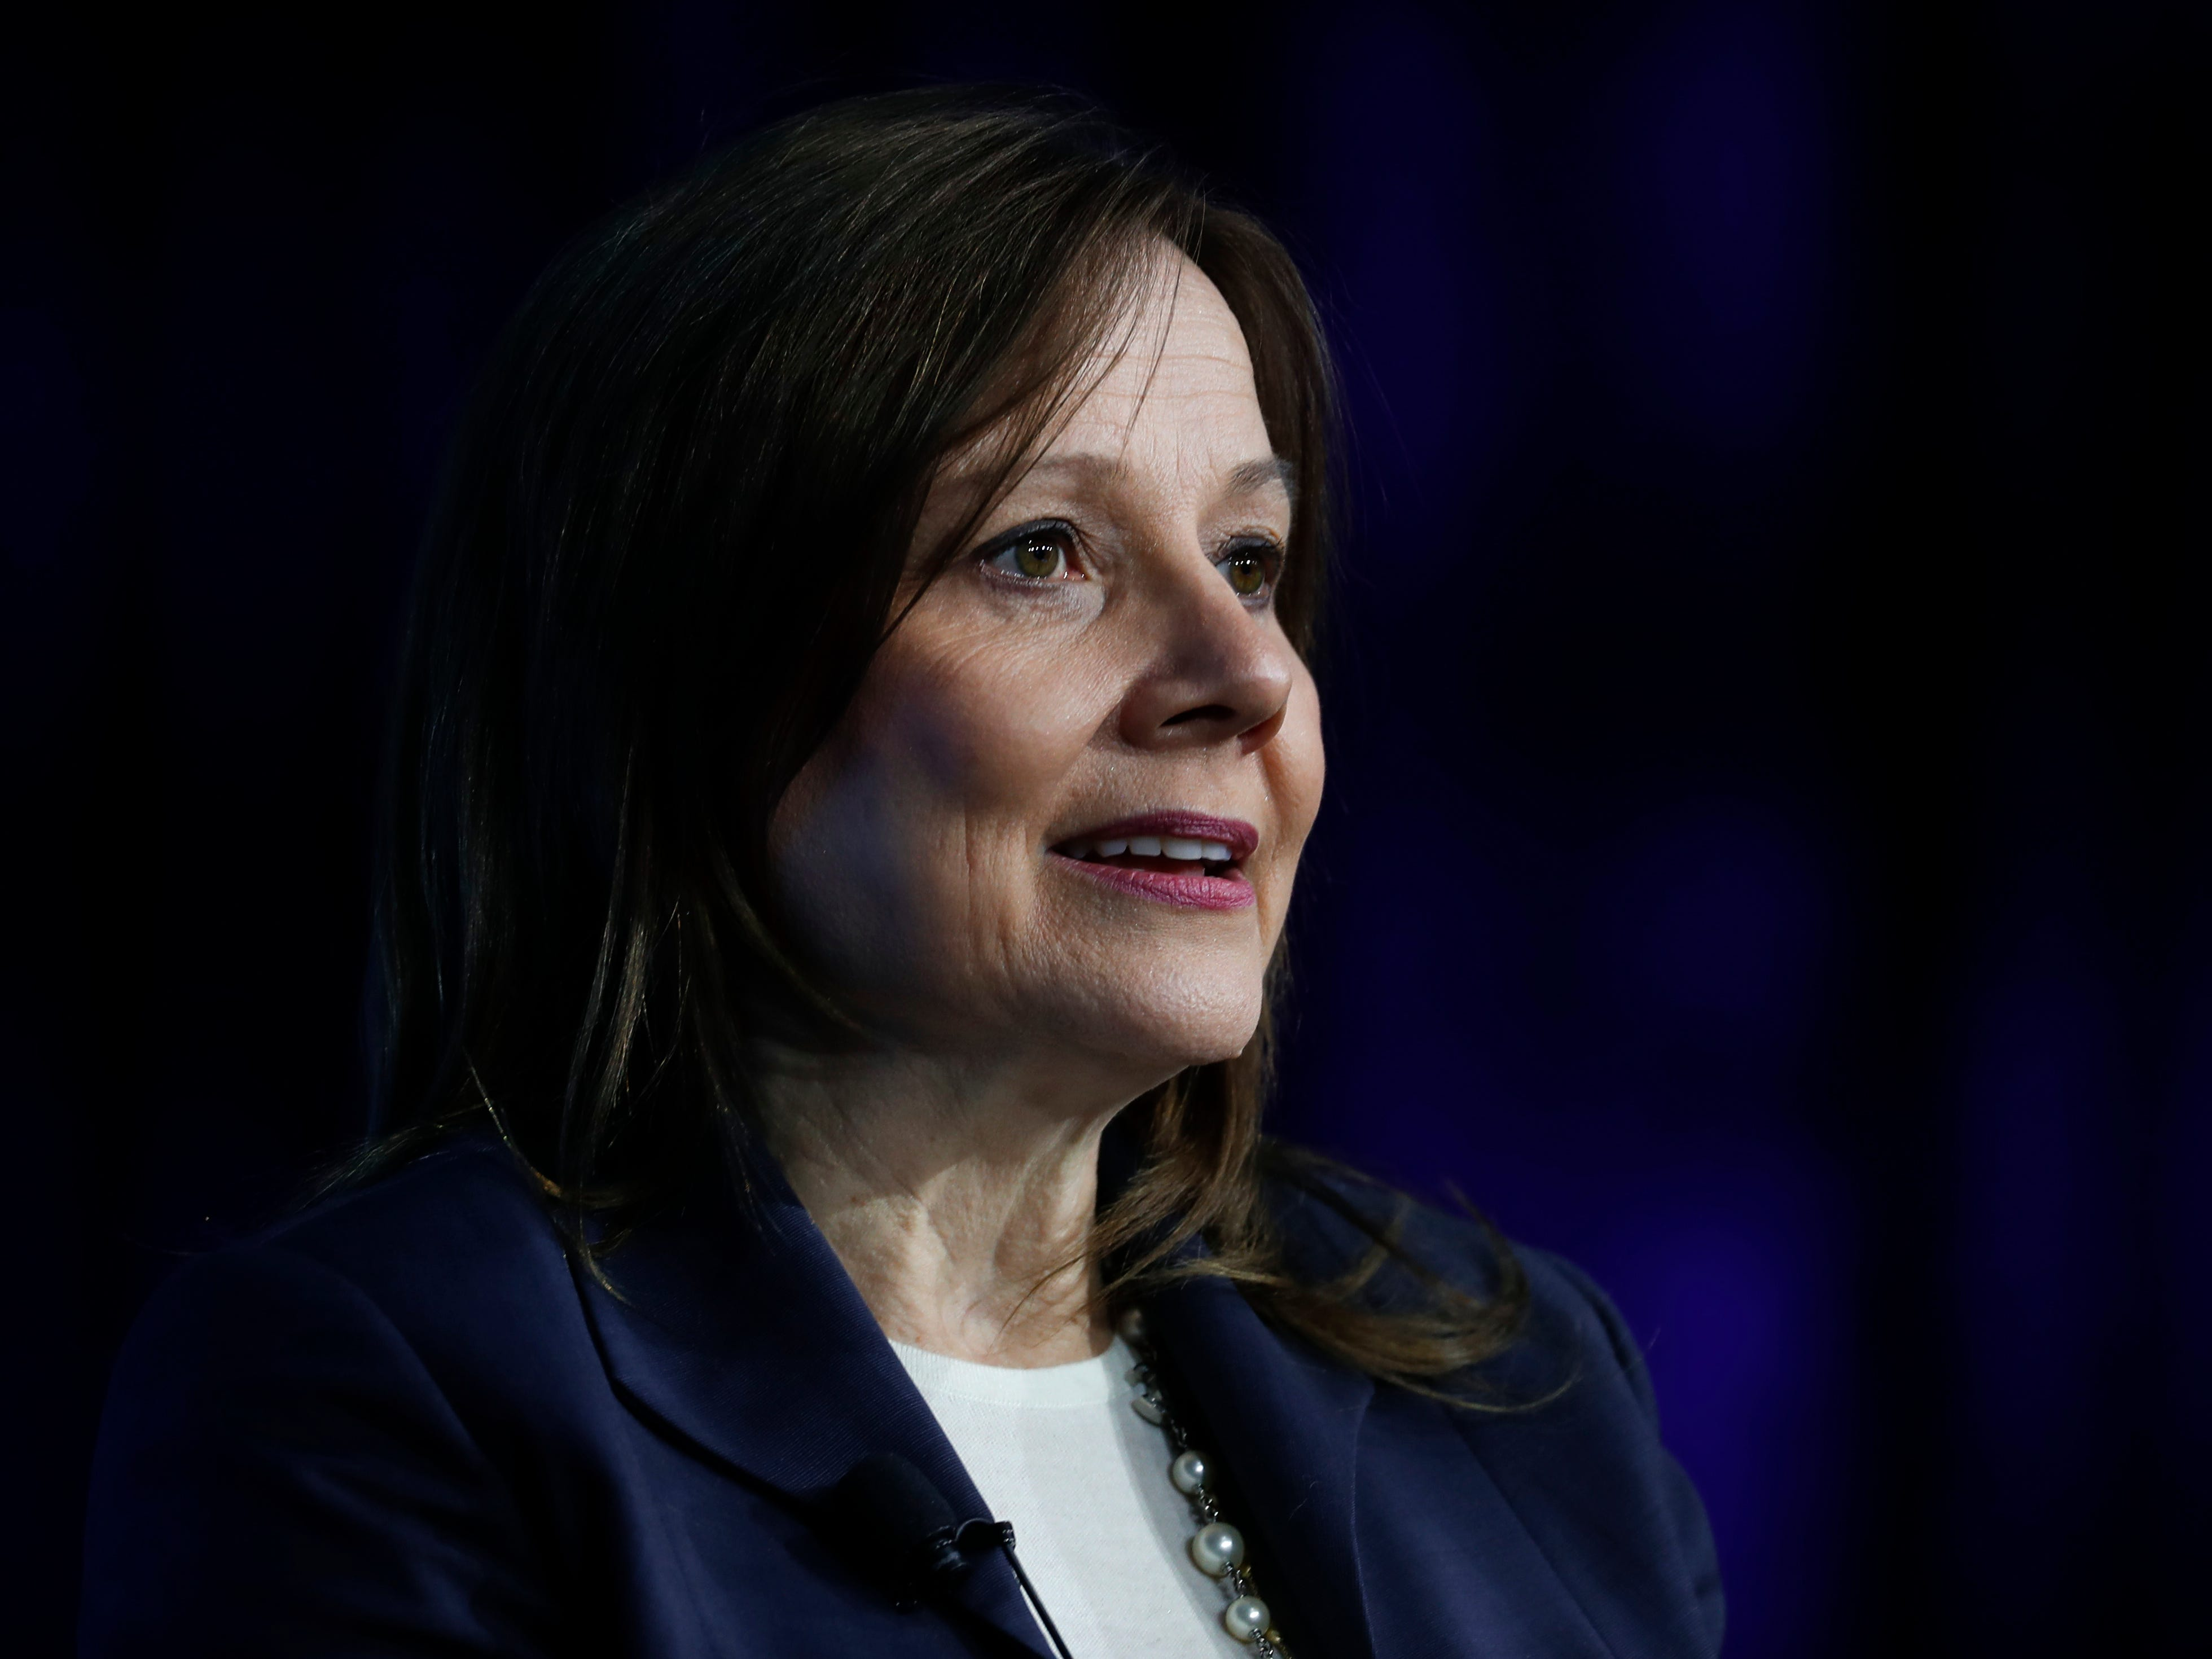 GM's Barra signals no new vehicles for Detroit Hamtramck, Lordstown